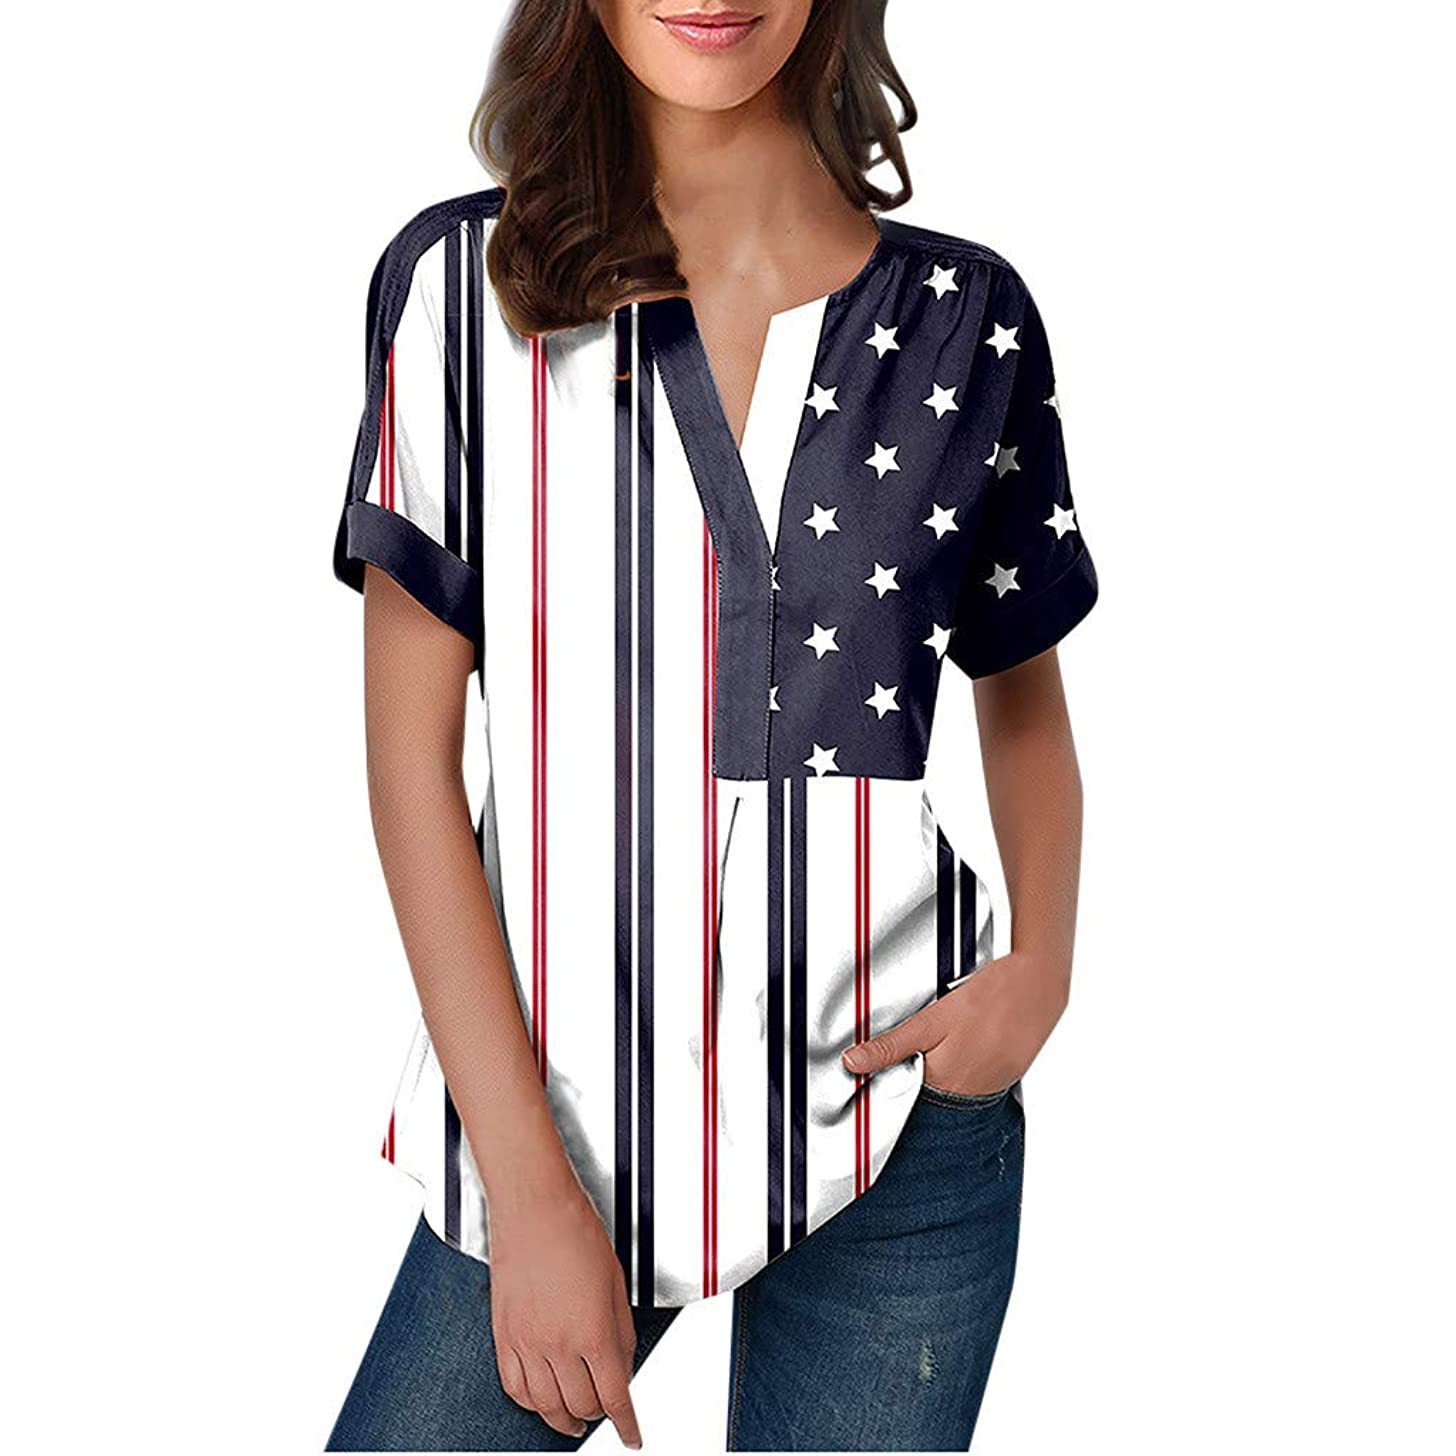 〓COOlCCI〓Womens Casual Long Sleeve Color Block Stripe T Shirts Tops Blouse V Neck Shirts Casual Work Tops Tunic Tops